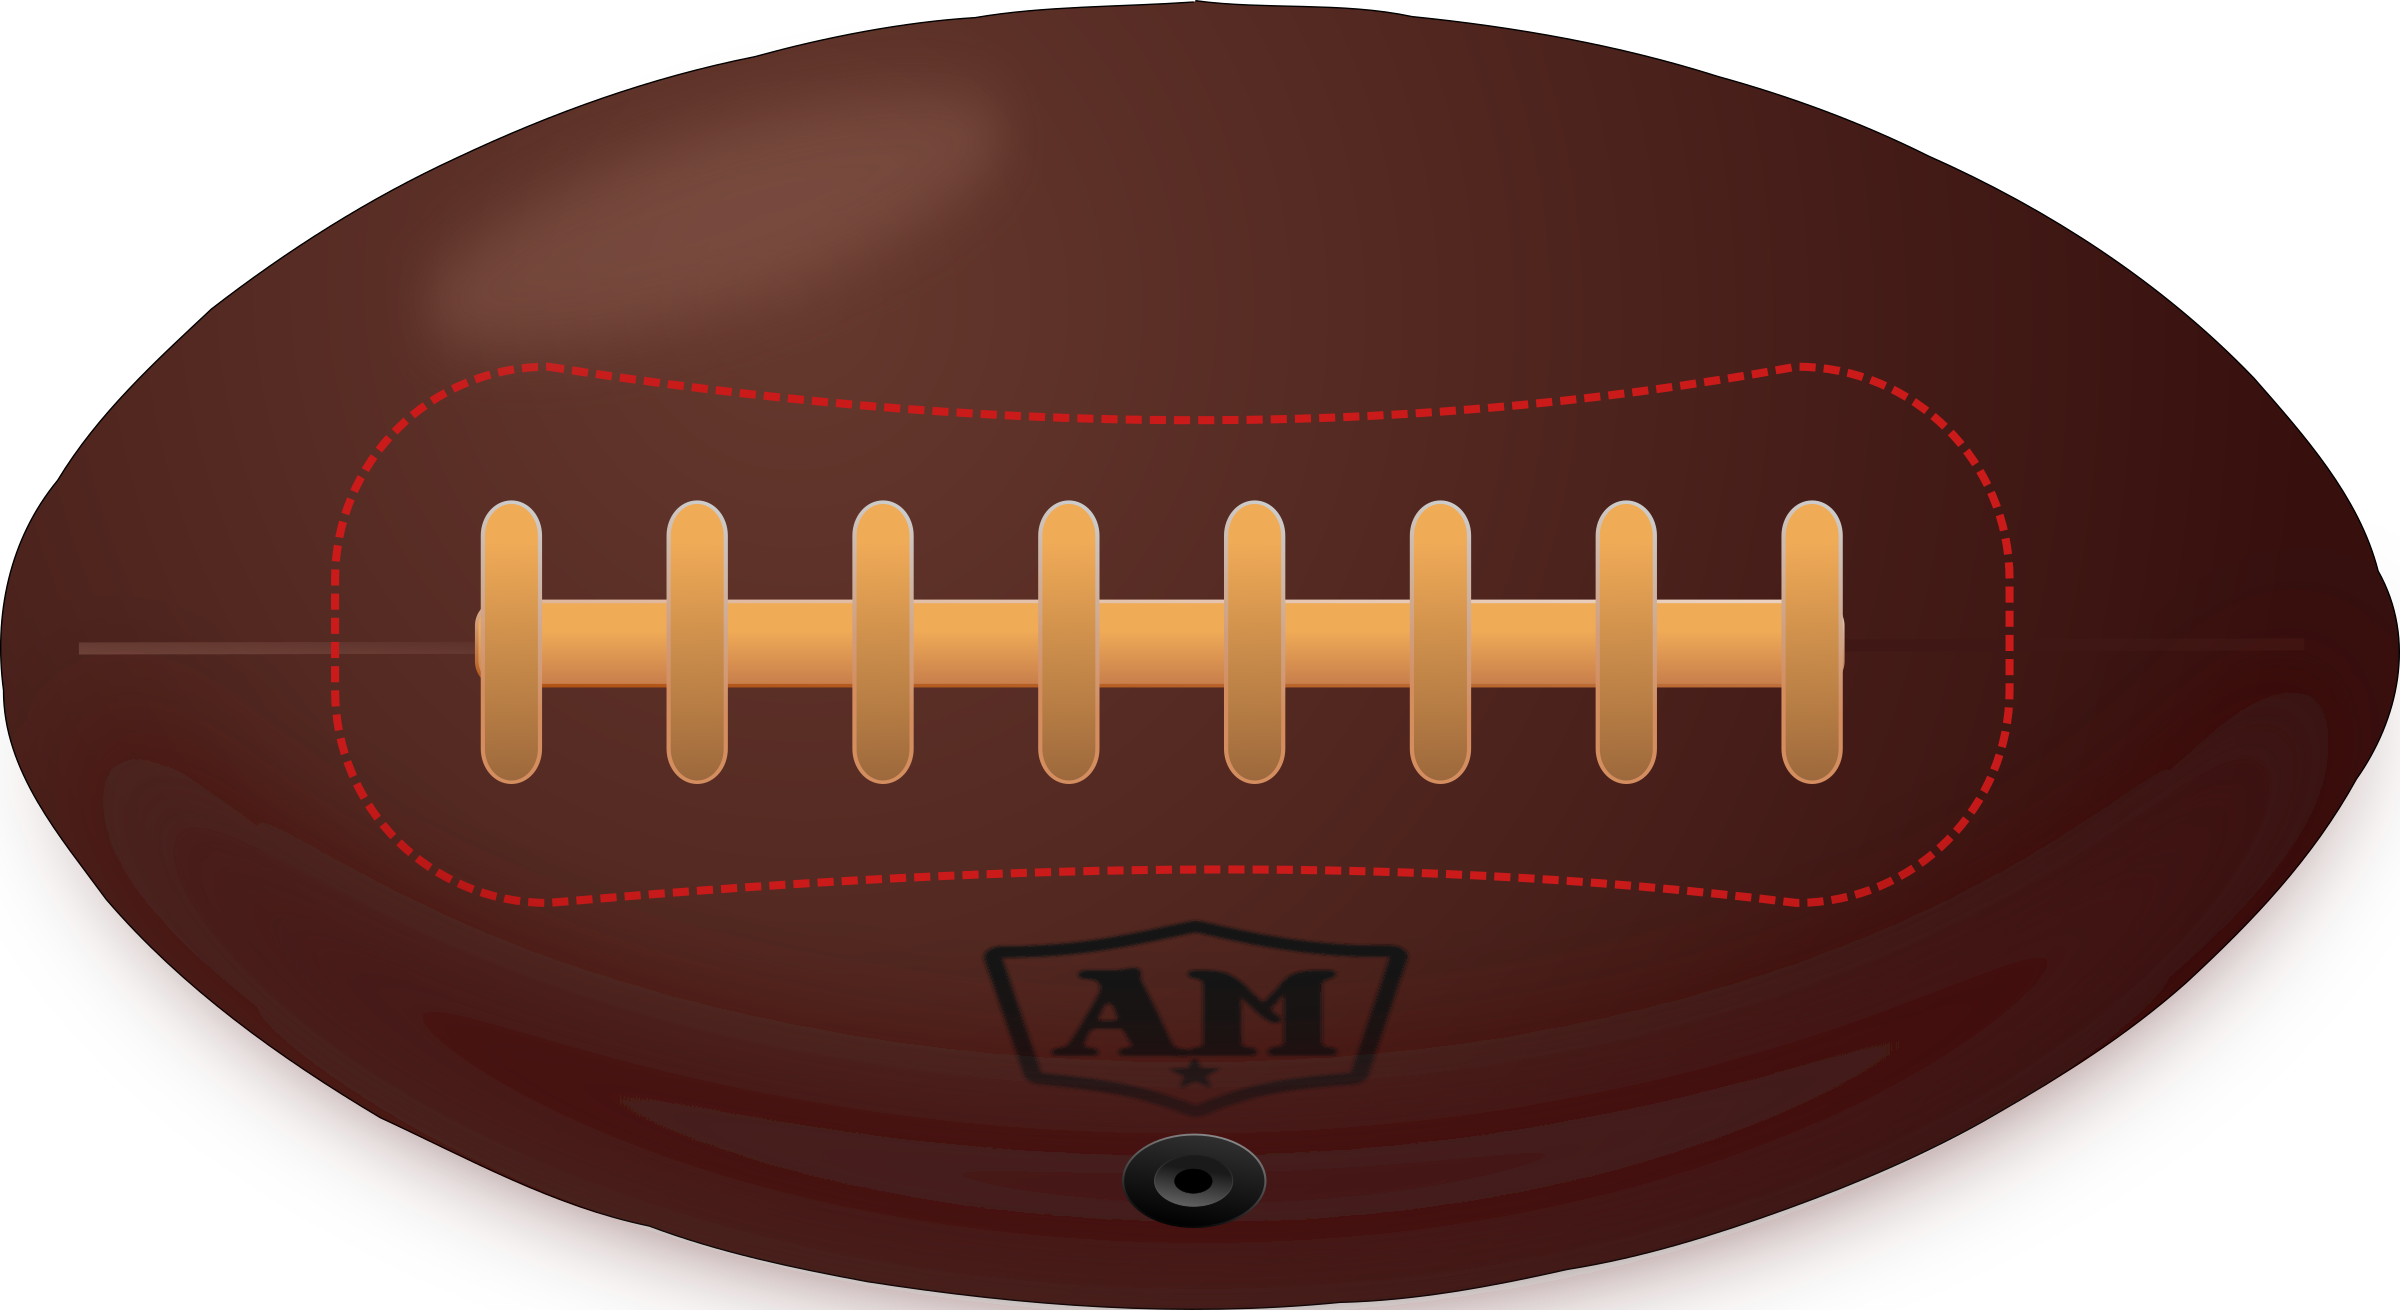 Vintage american football big. Retro clipart rugby